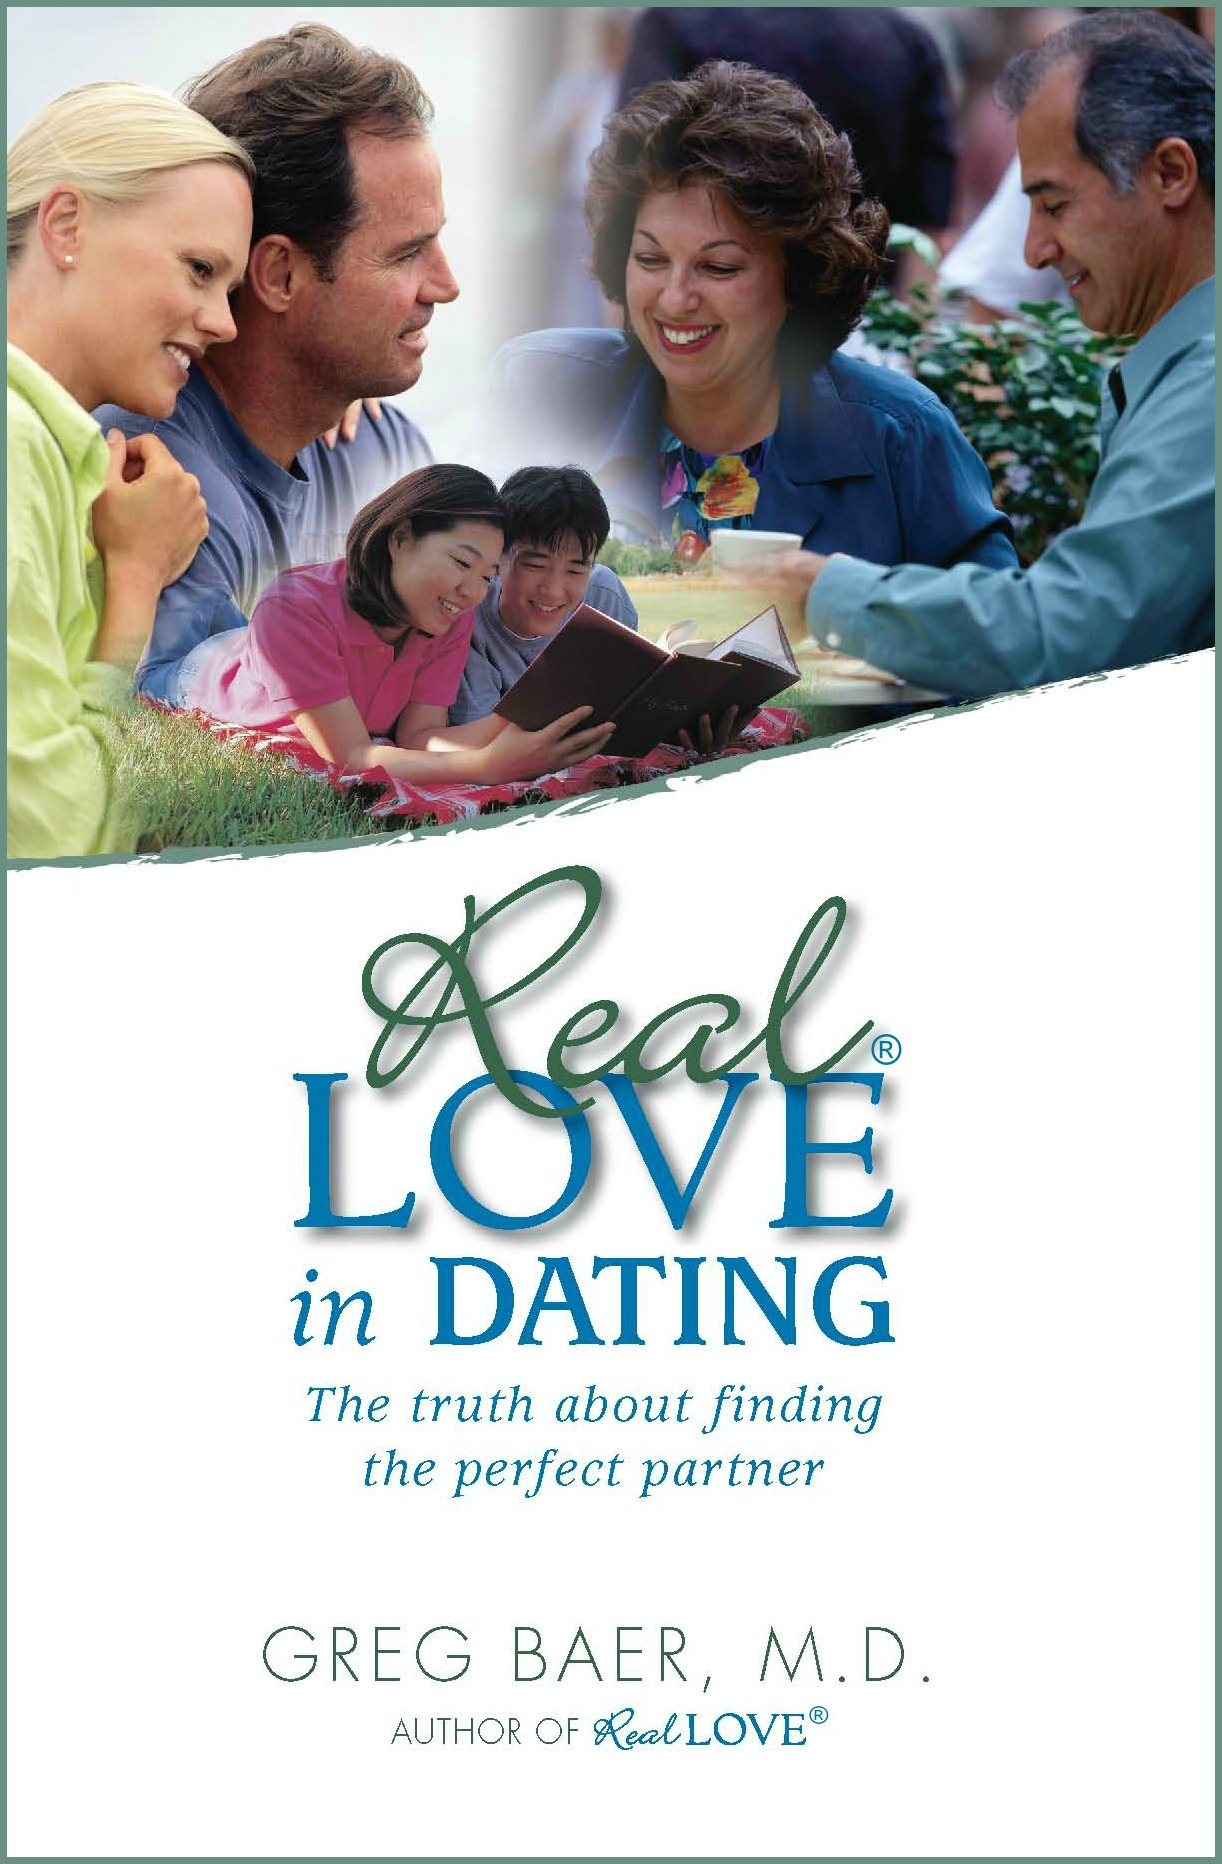 Real love in dating greg baer